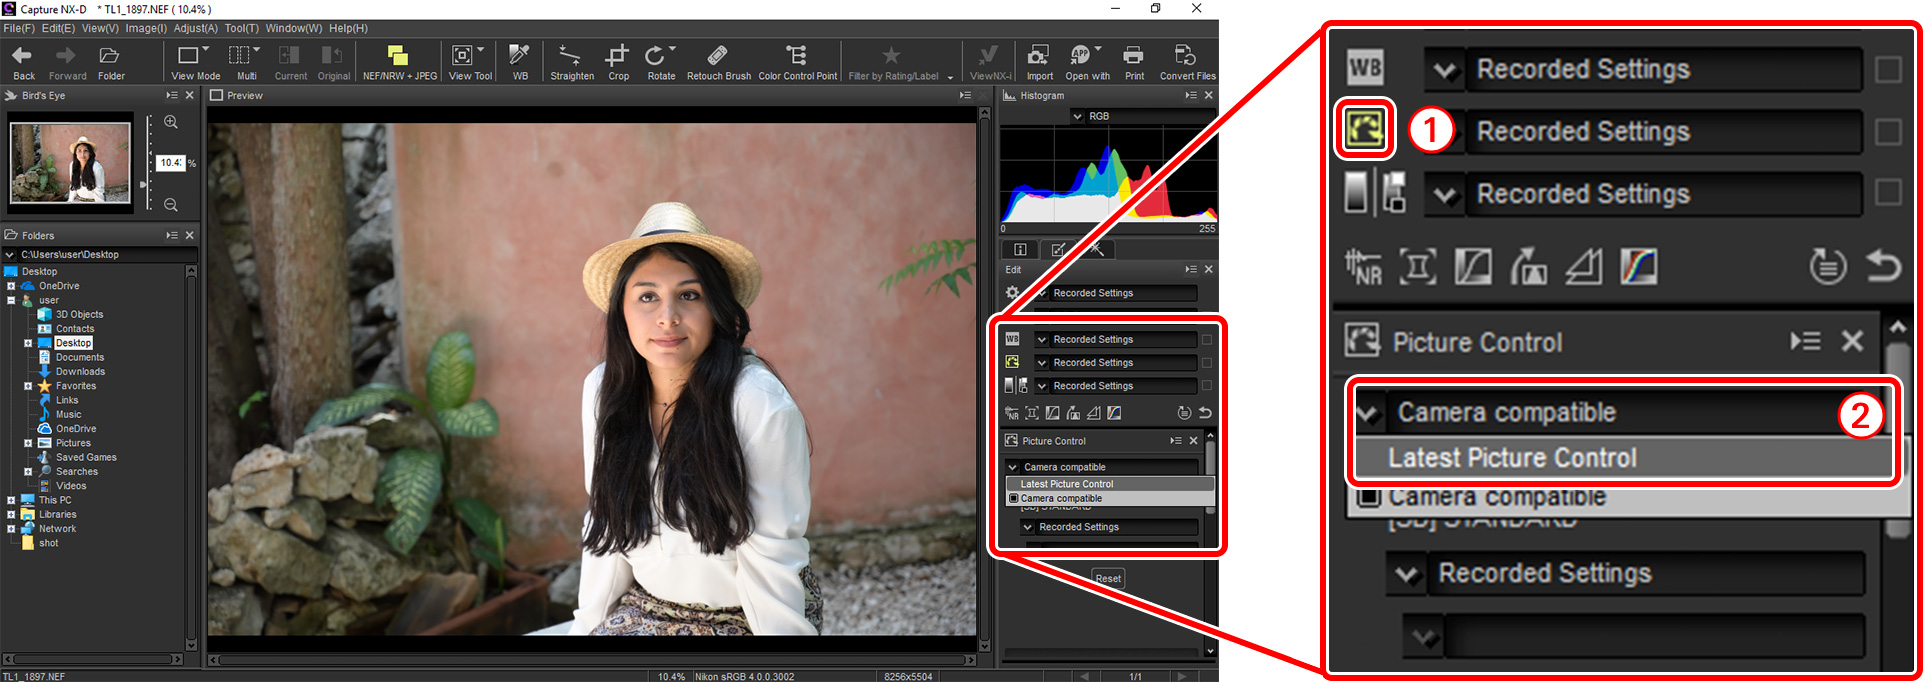 Z7/Z6 TIPS - Sharpening and Softening Images | Technical